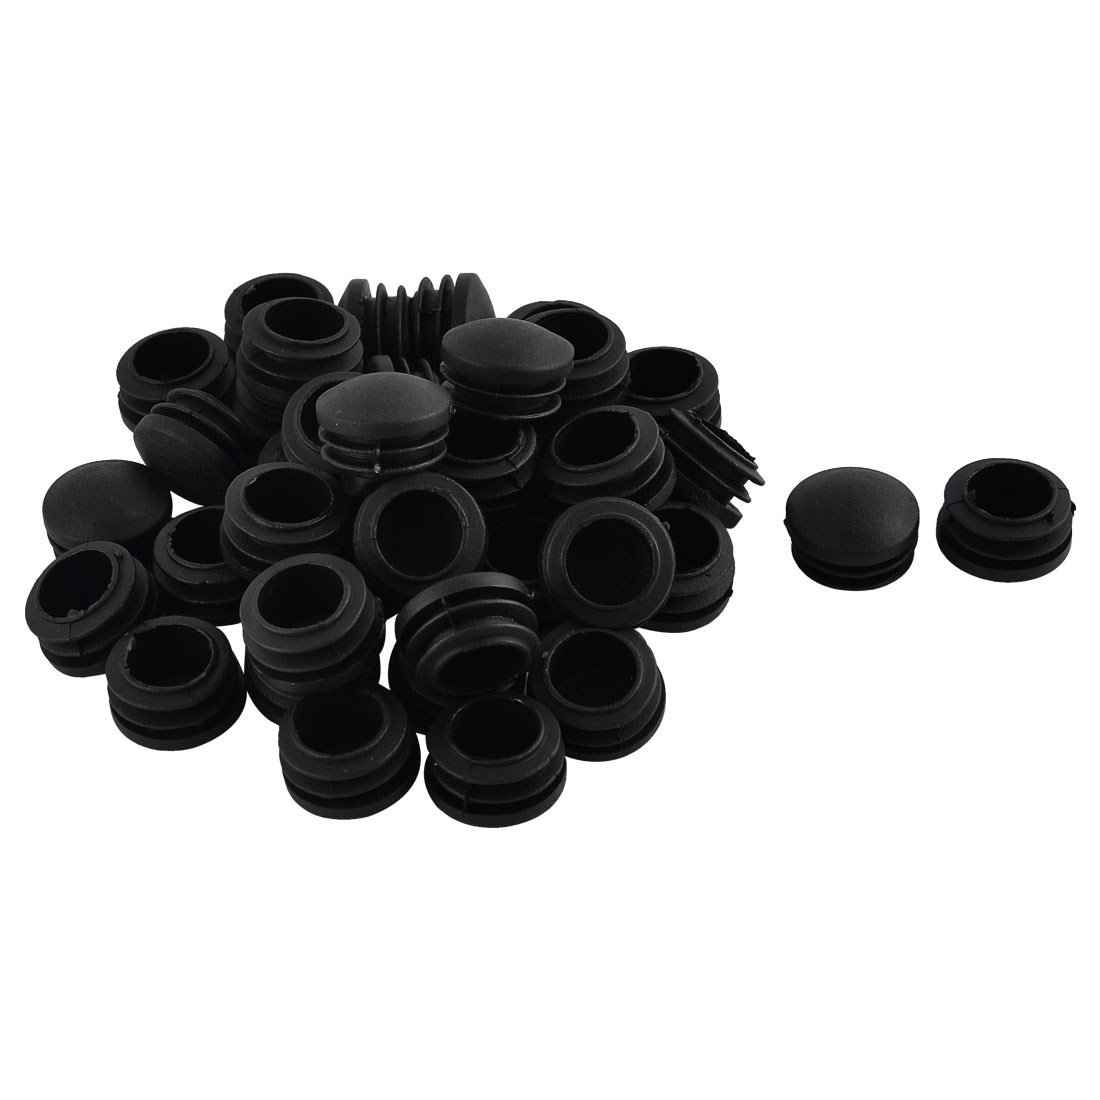 Furniture Table Chair Legs Plastic Round Head Tube Pipe Insert Cap Cover Black 25mm Dia 40pcs